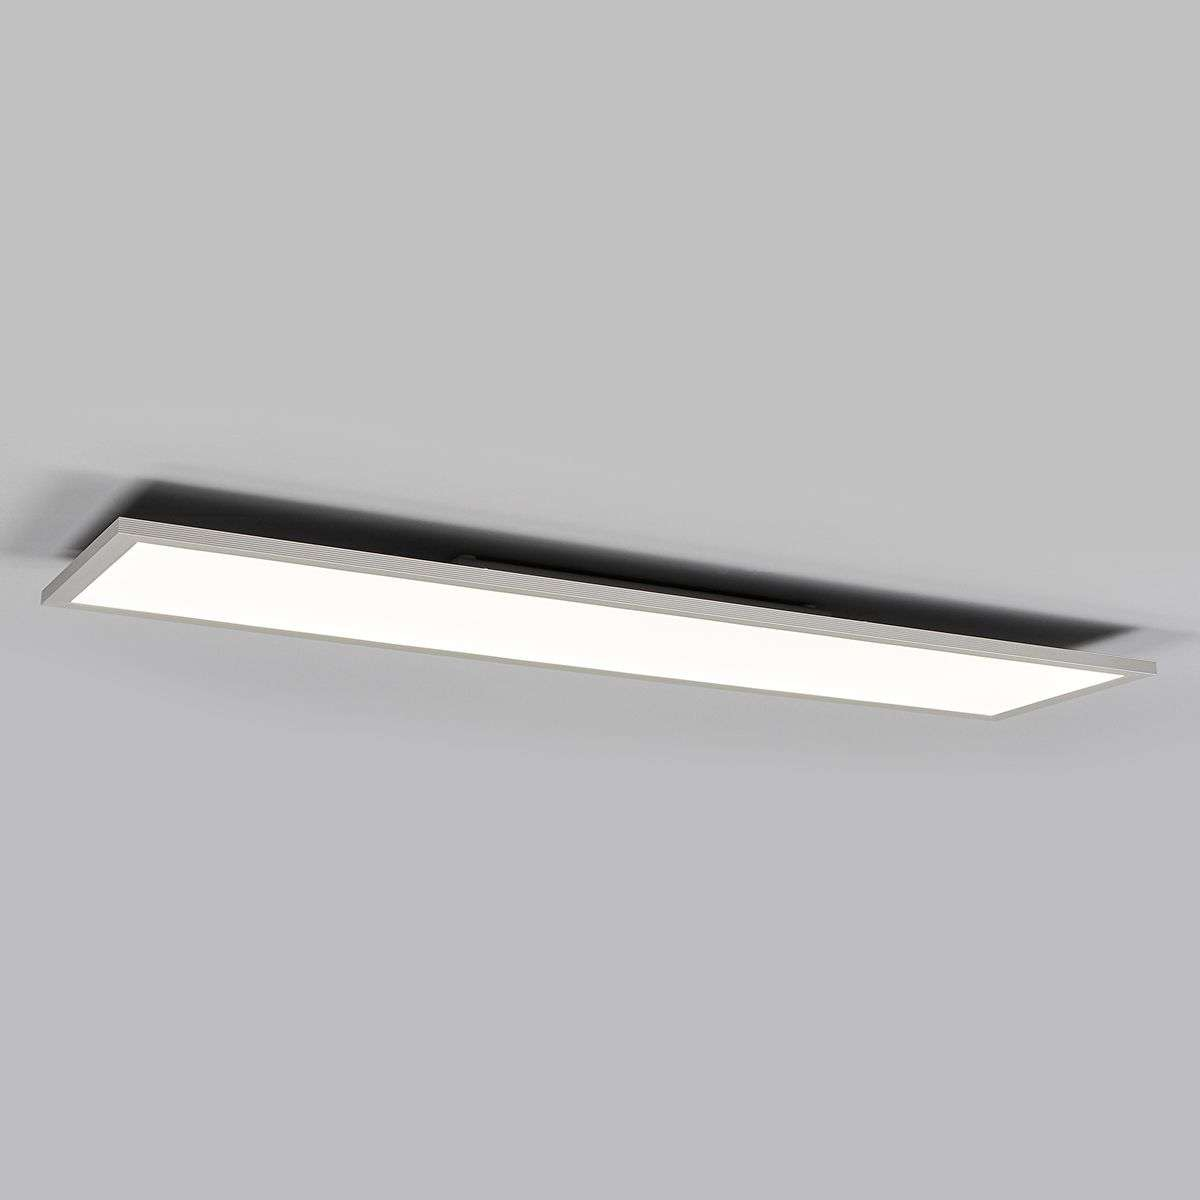 universeel led paneel all in one bap daglicht lampen24be